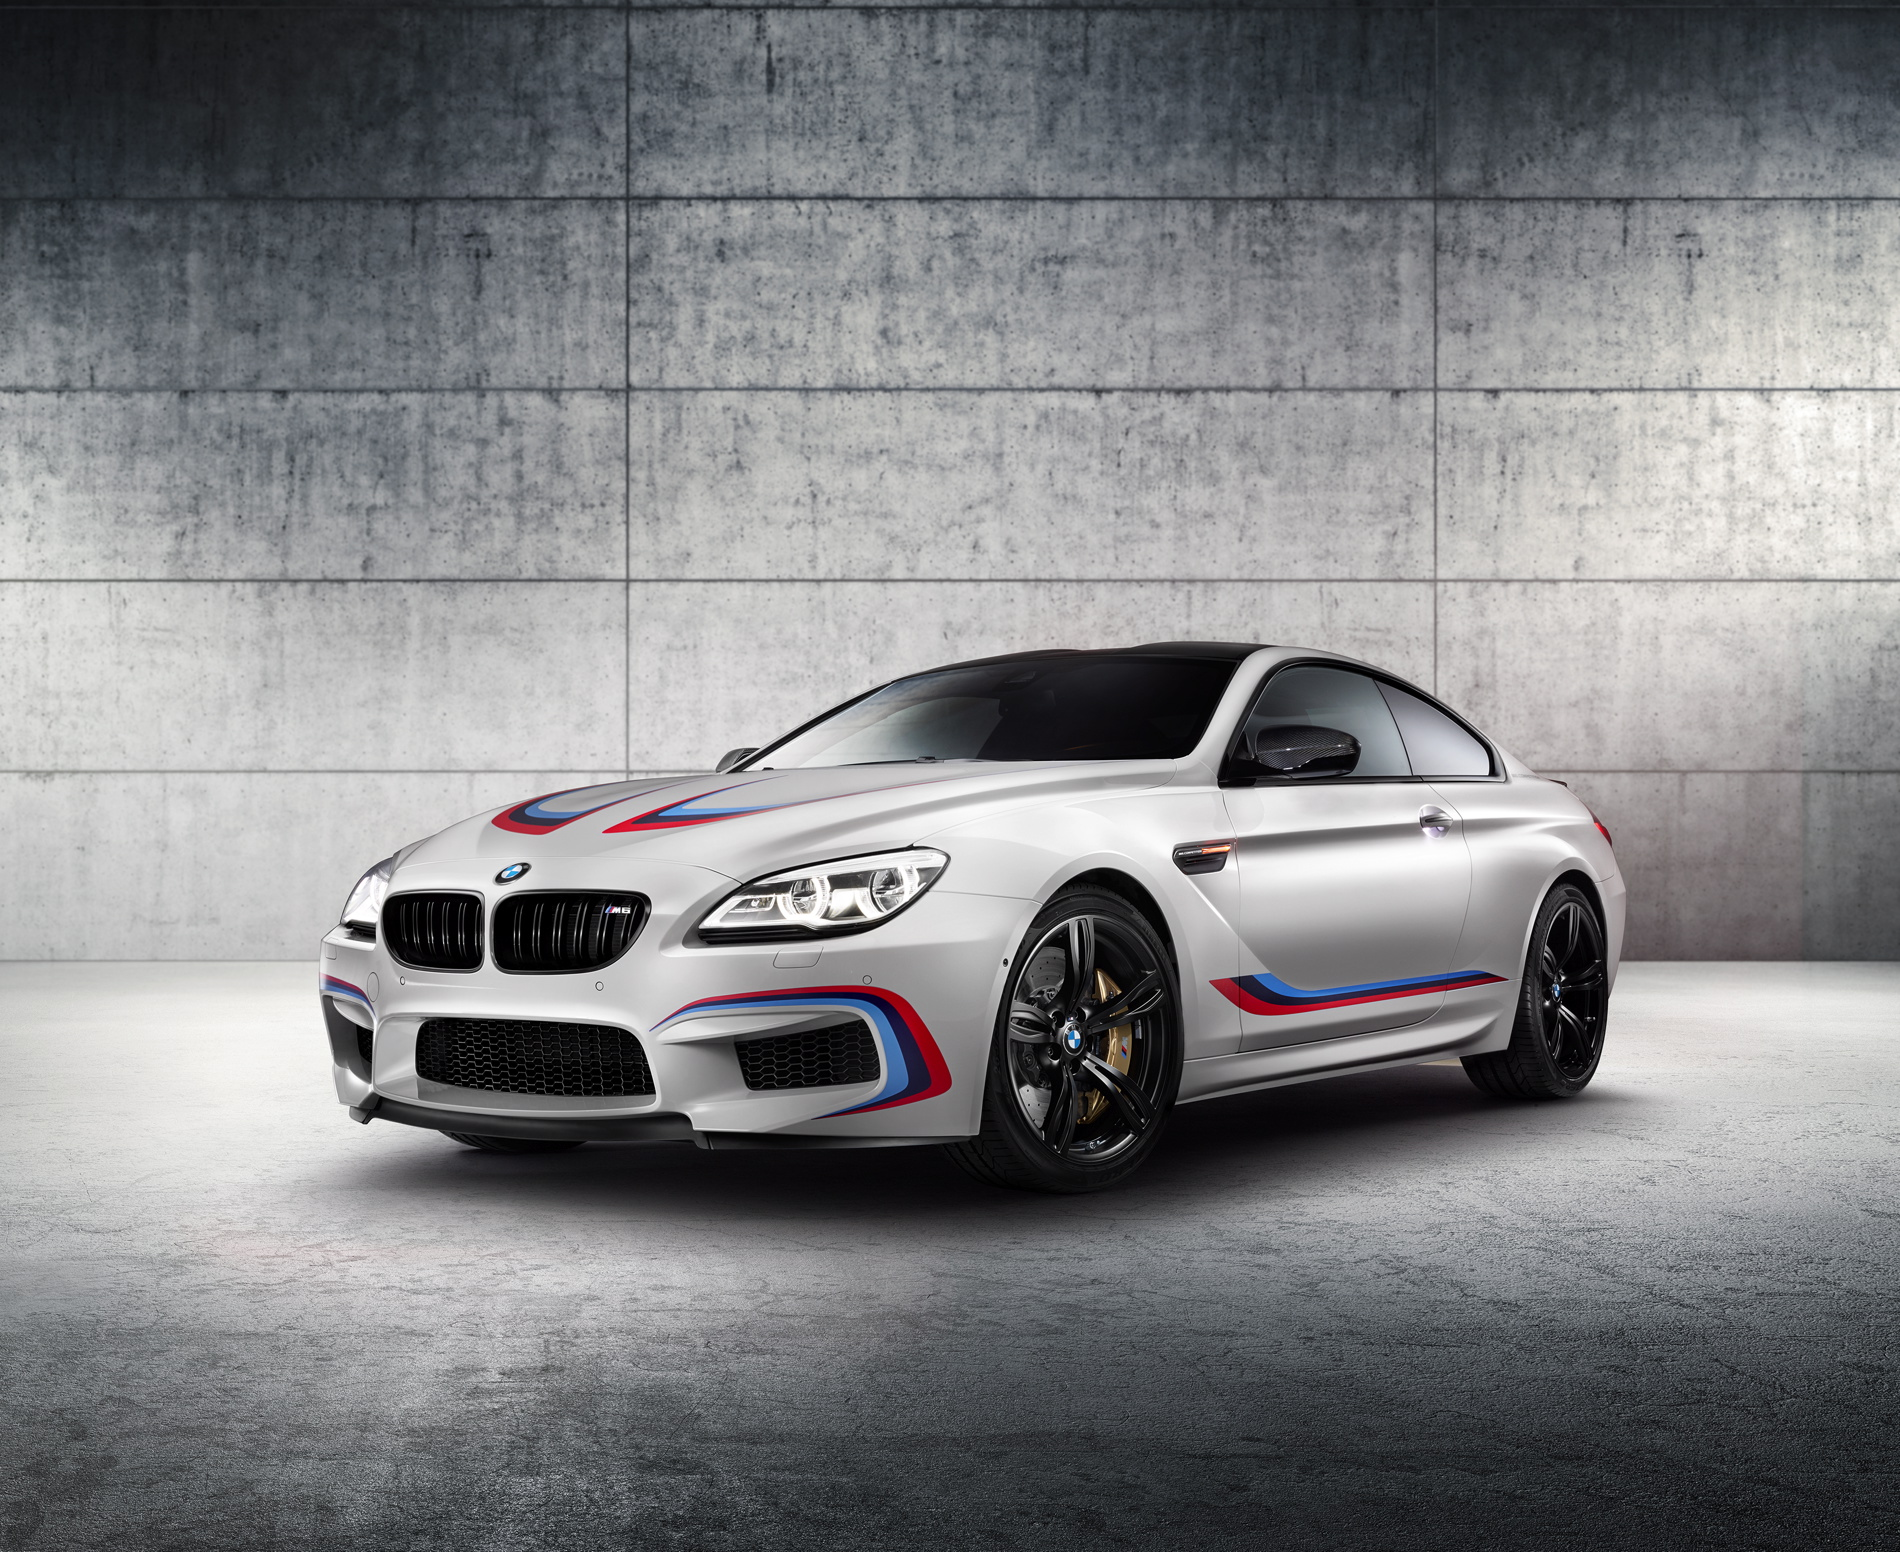 2016 bmw competition edition images 1900x 1200 06